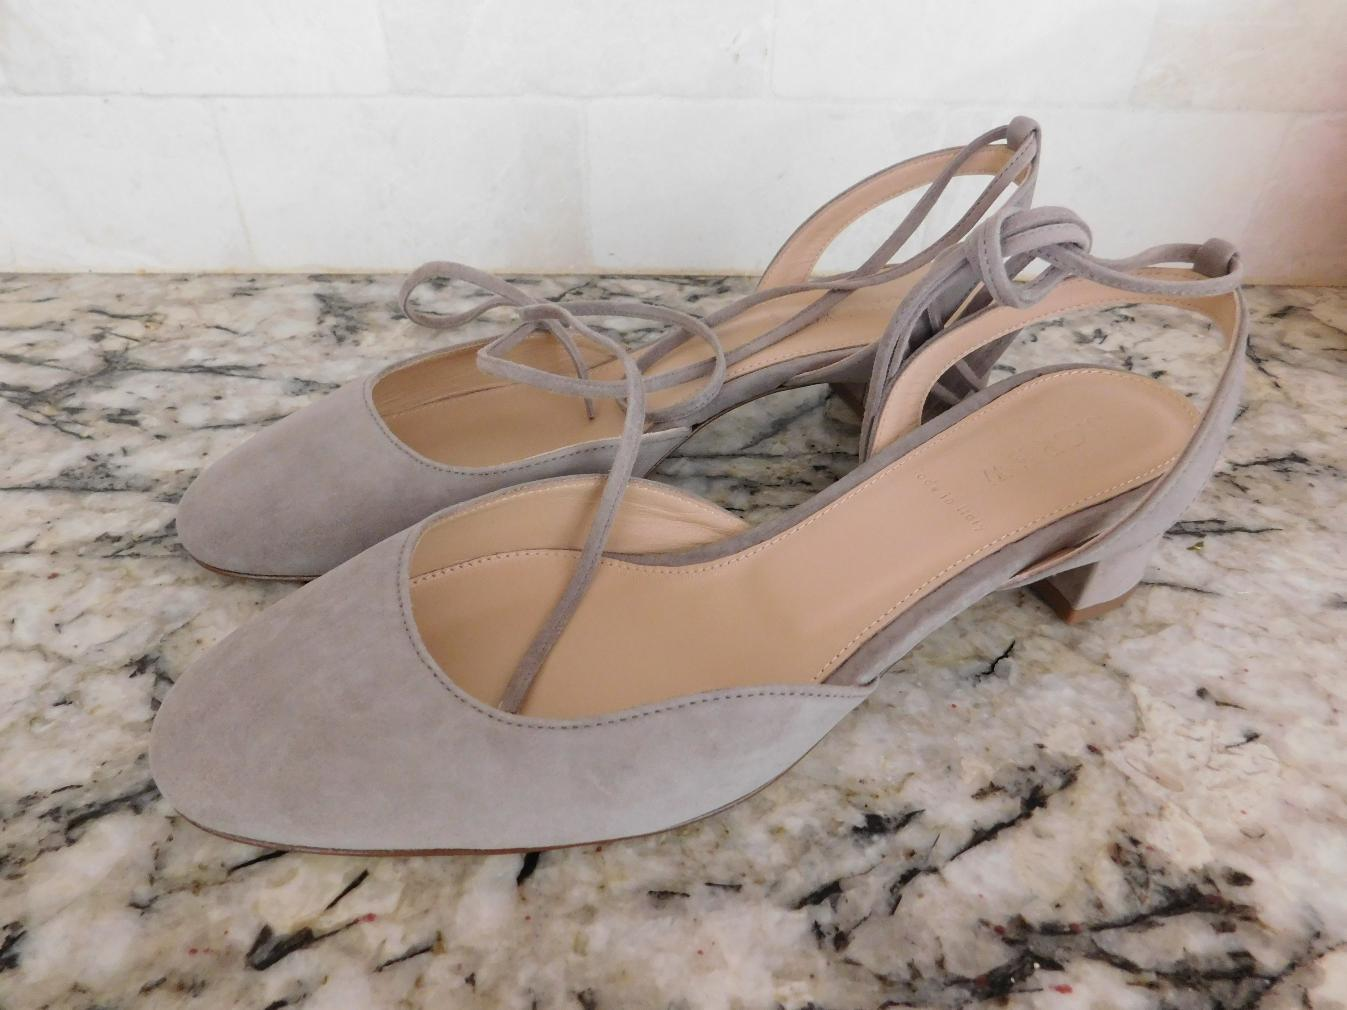 JCrew-178-Ankle-Wrap-Slingback-Heels-in-Suede-G4095-8-5-Antique-Dove-Grey-NEW thumbnail 2